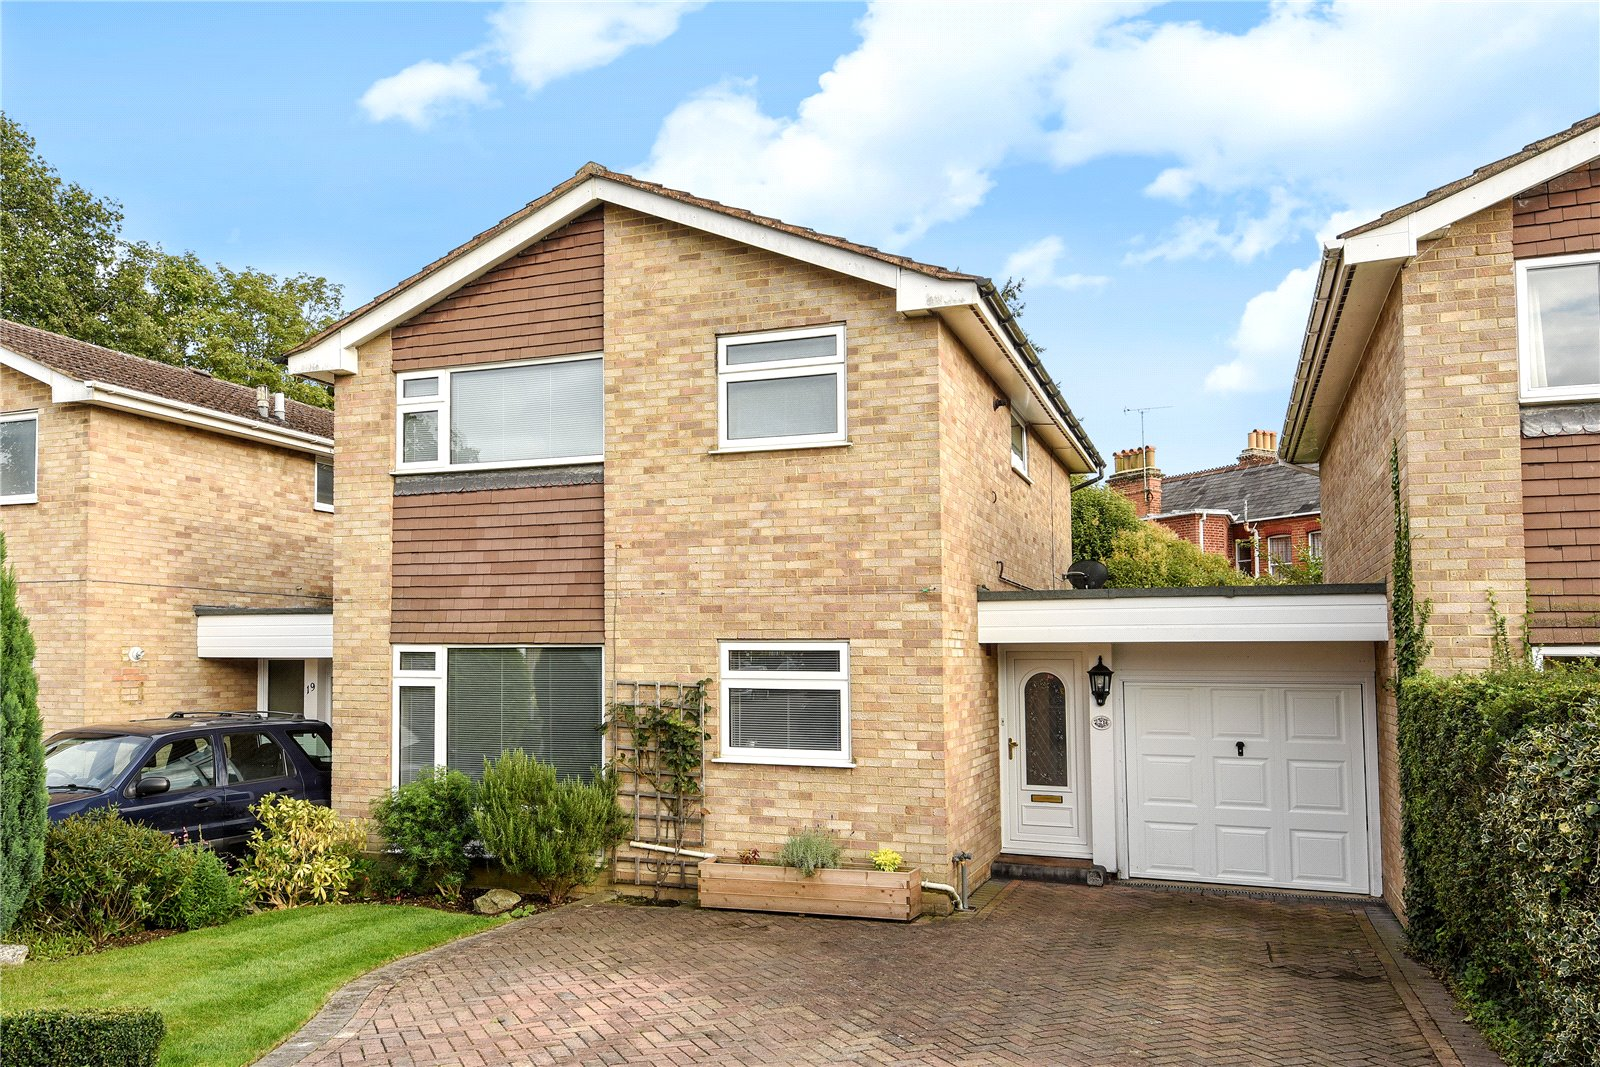 3 Bedrooms Link Detached House for sale in Holmewood Close, Wokingham, Berkshire, RG41